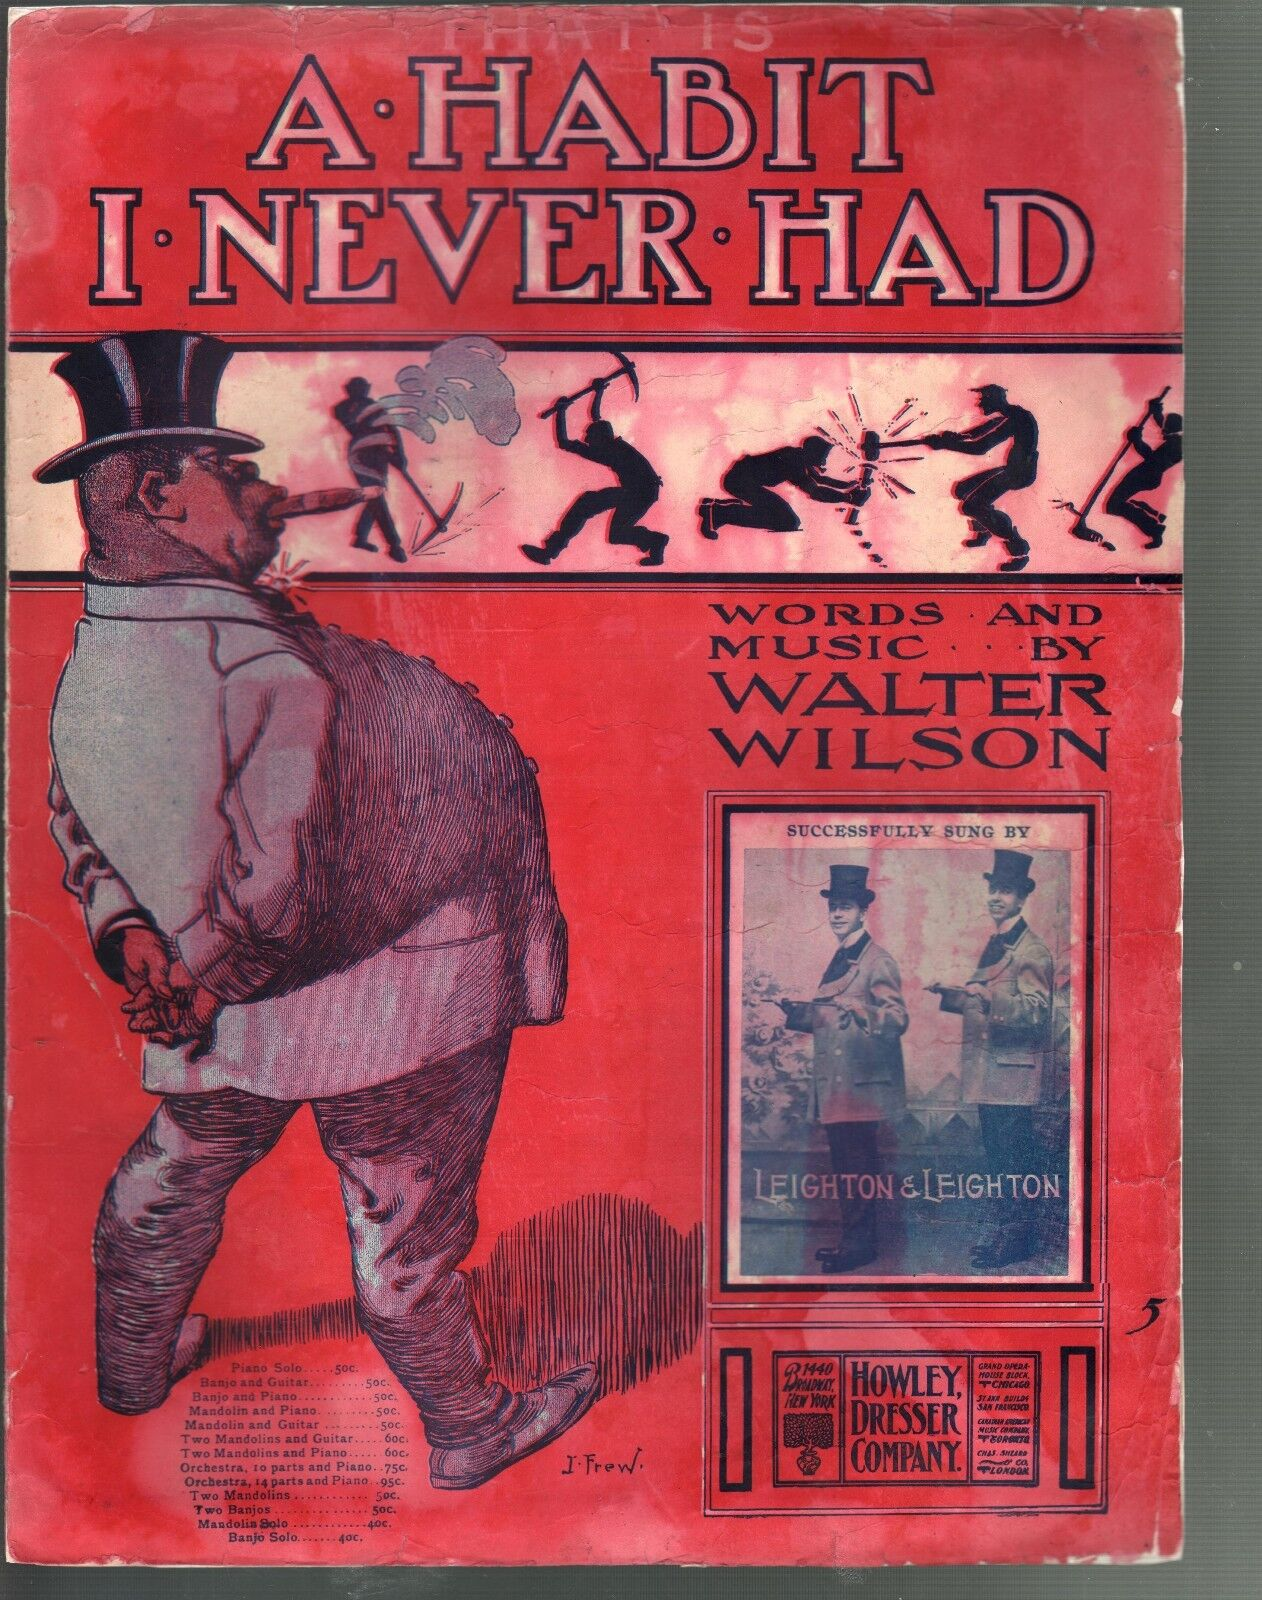 A Habit I Never Had 1904 Large Format Sheet Music